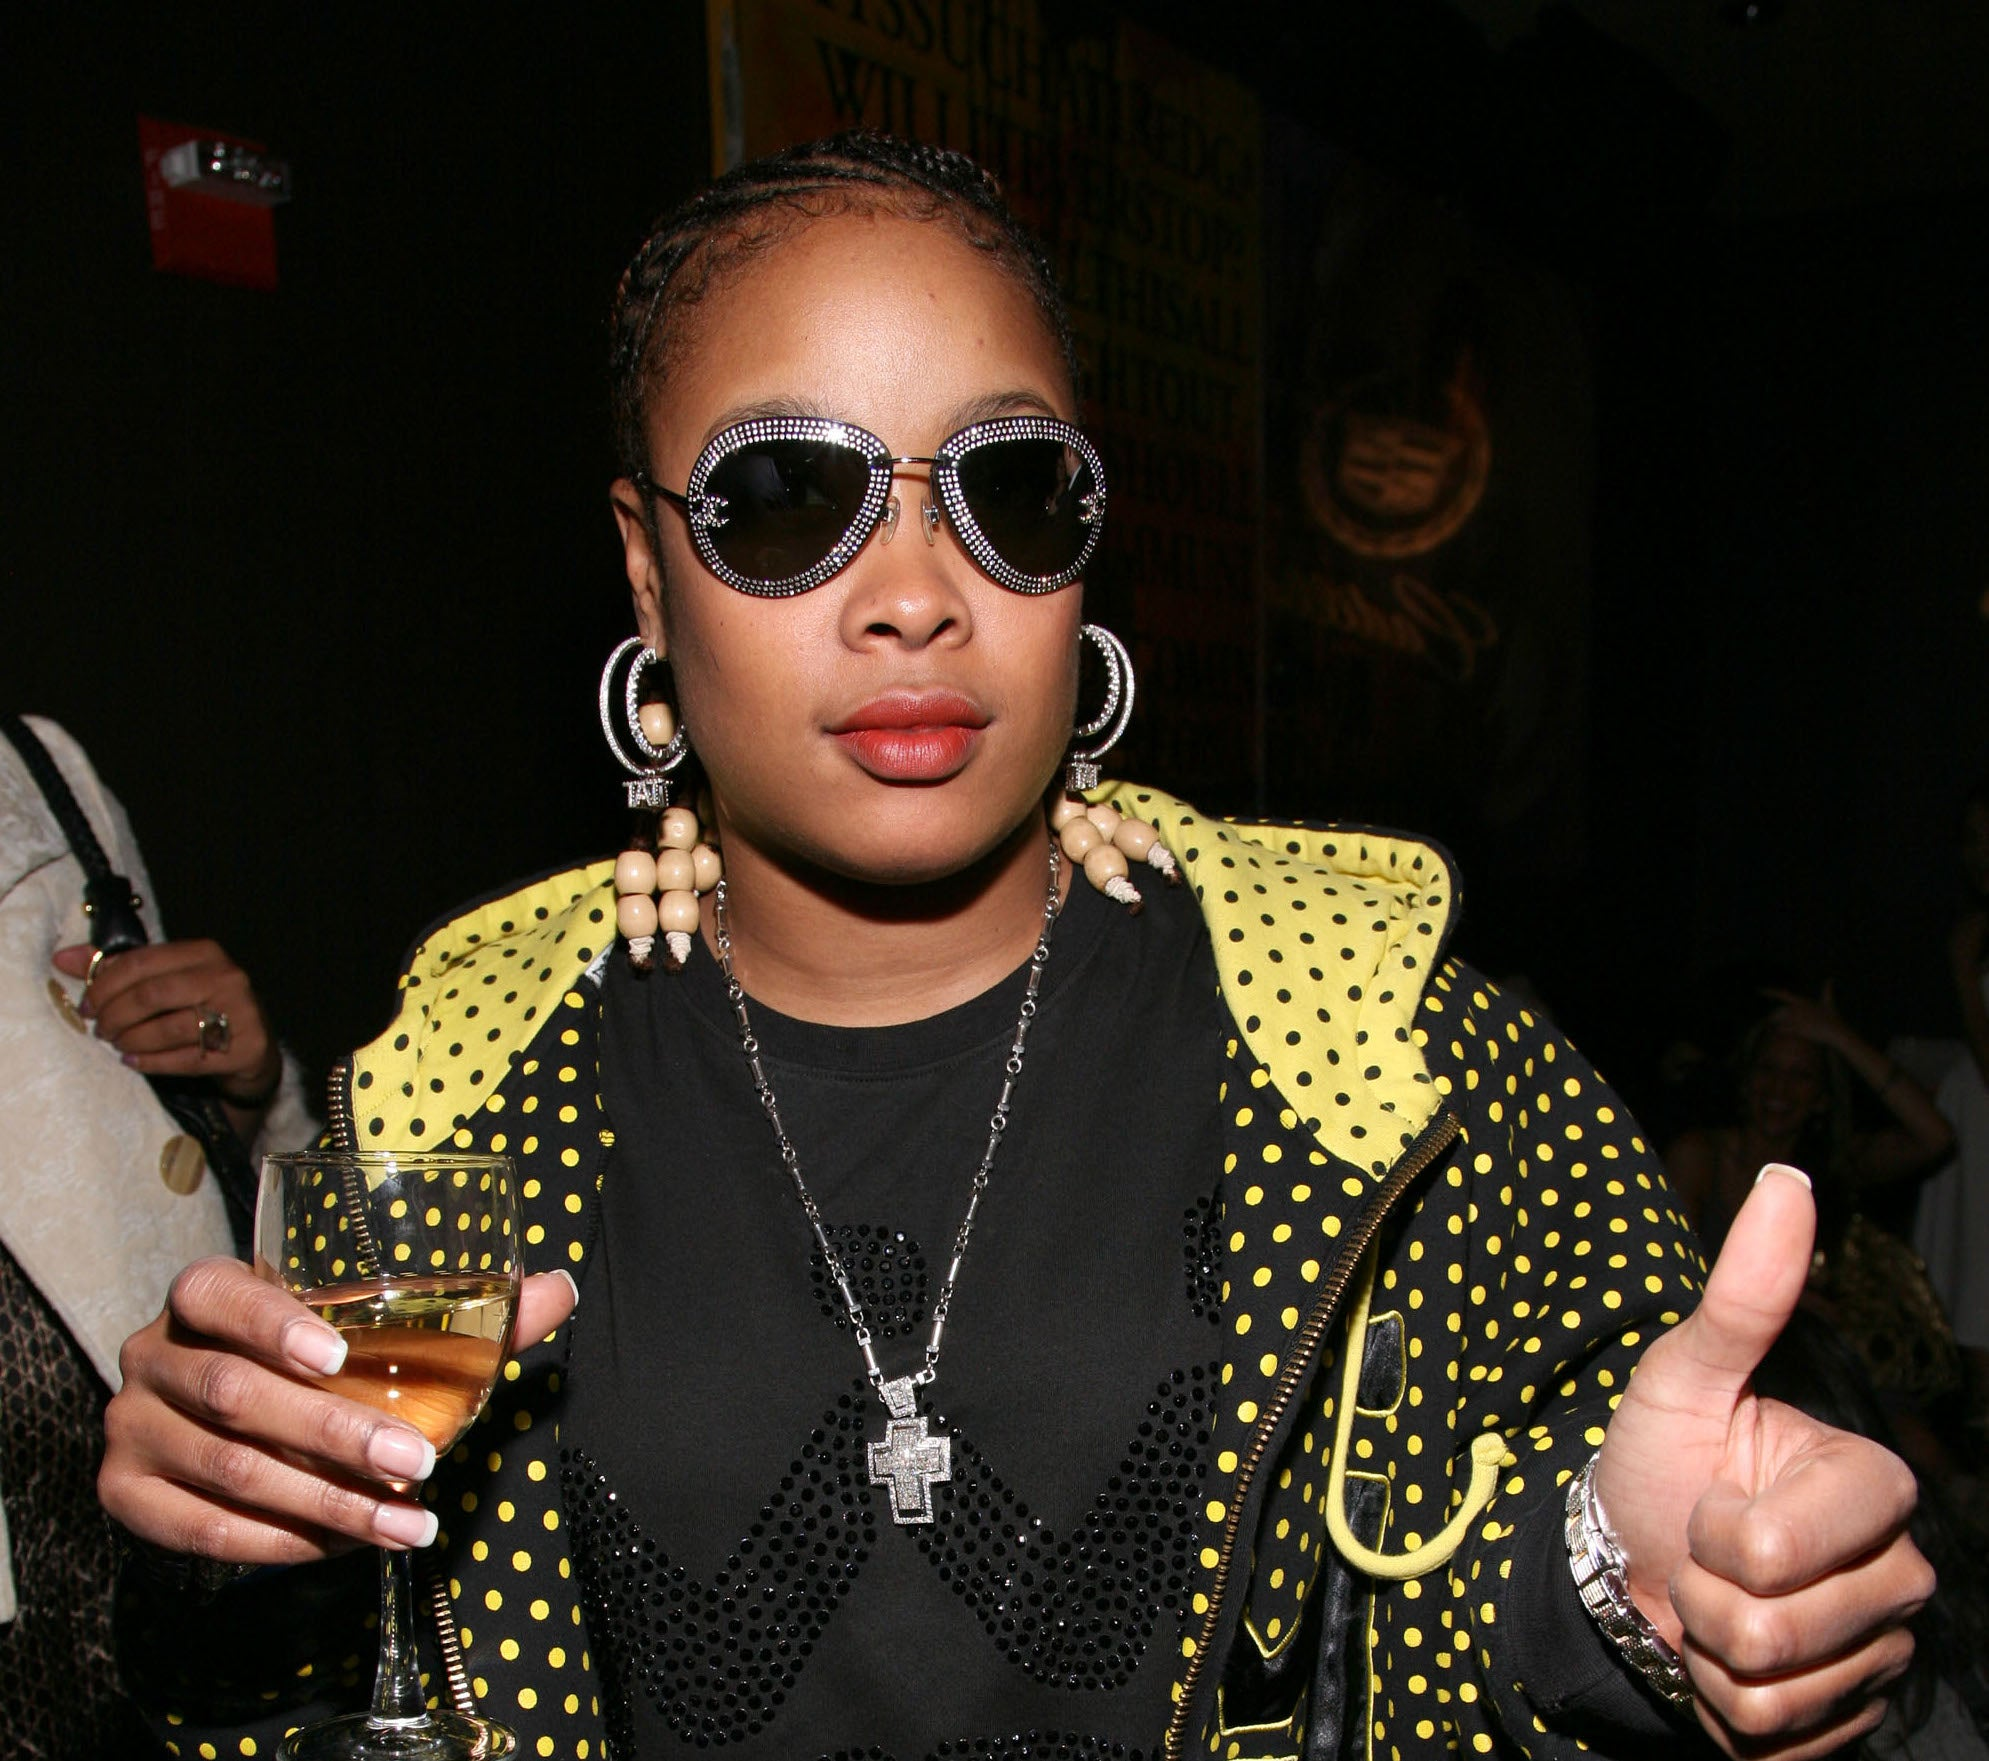 Da Brat Ordered To Pay $6.4 Million For Assaulting Ex-NFL Cheerleader